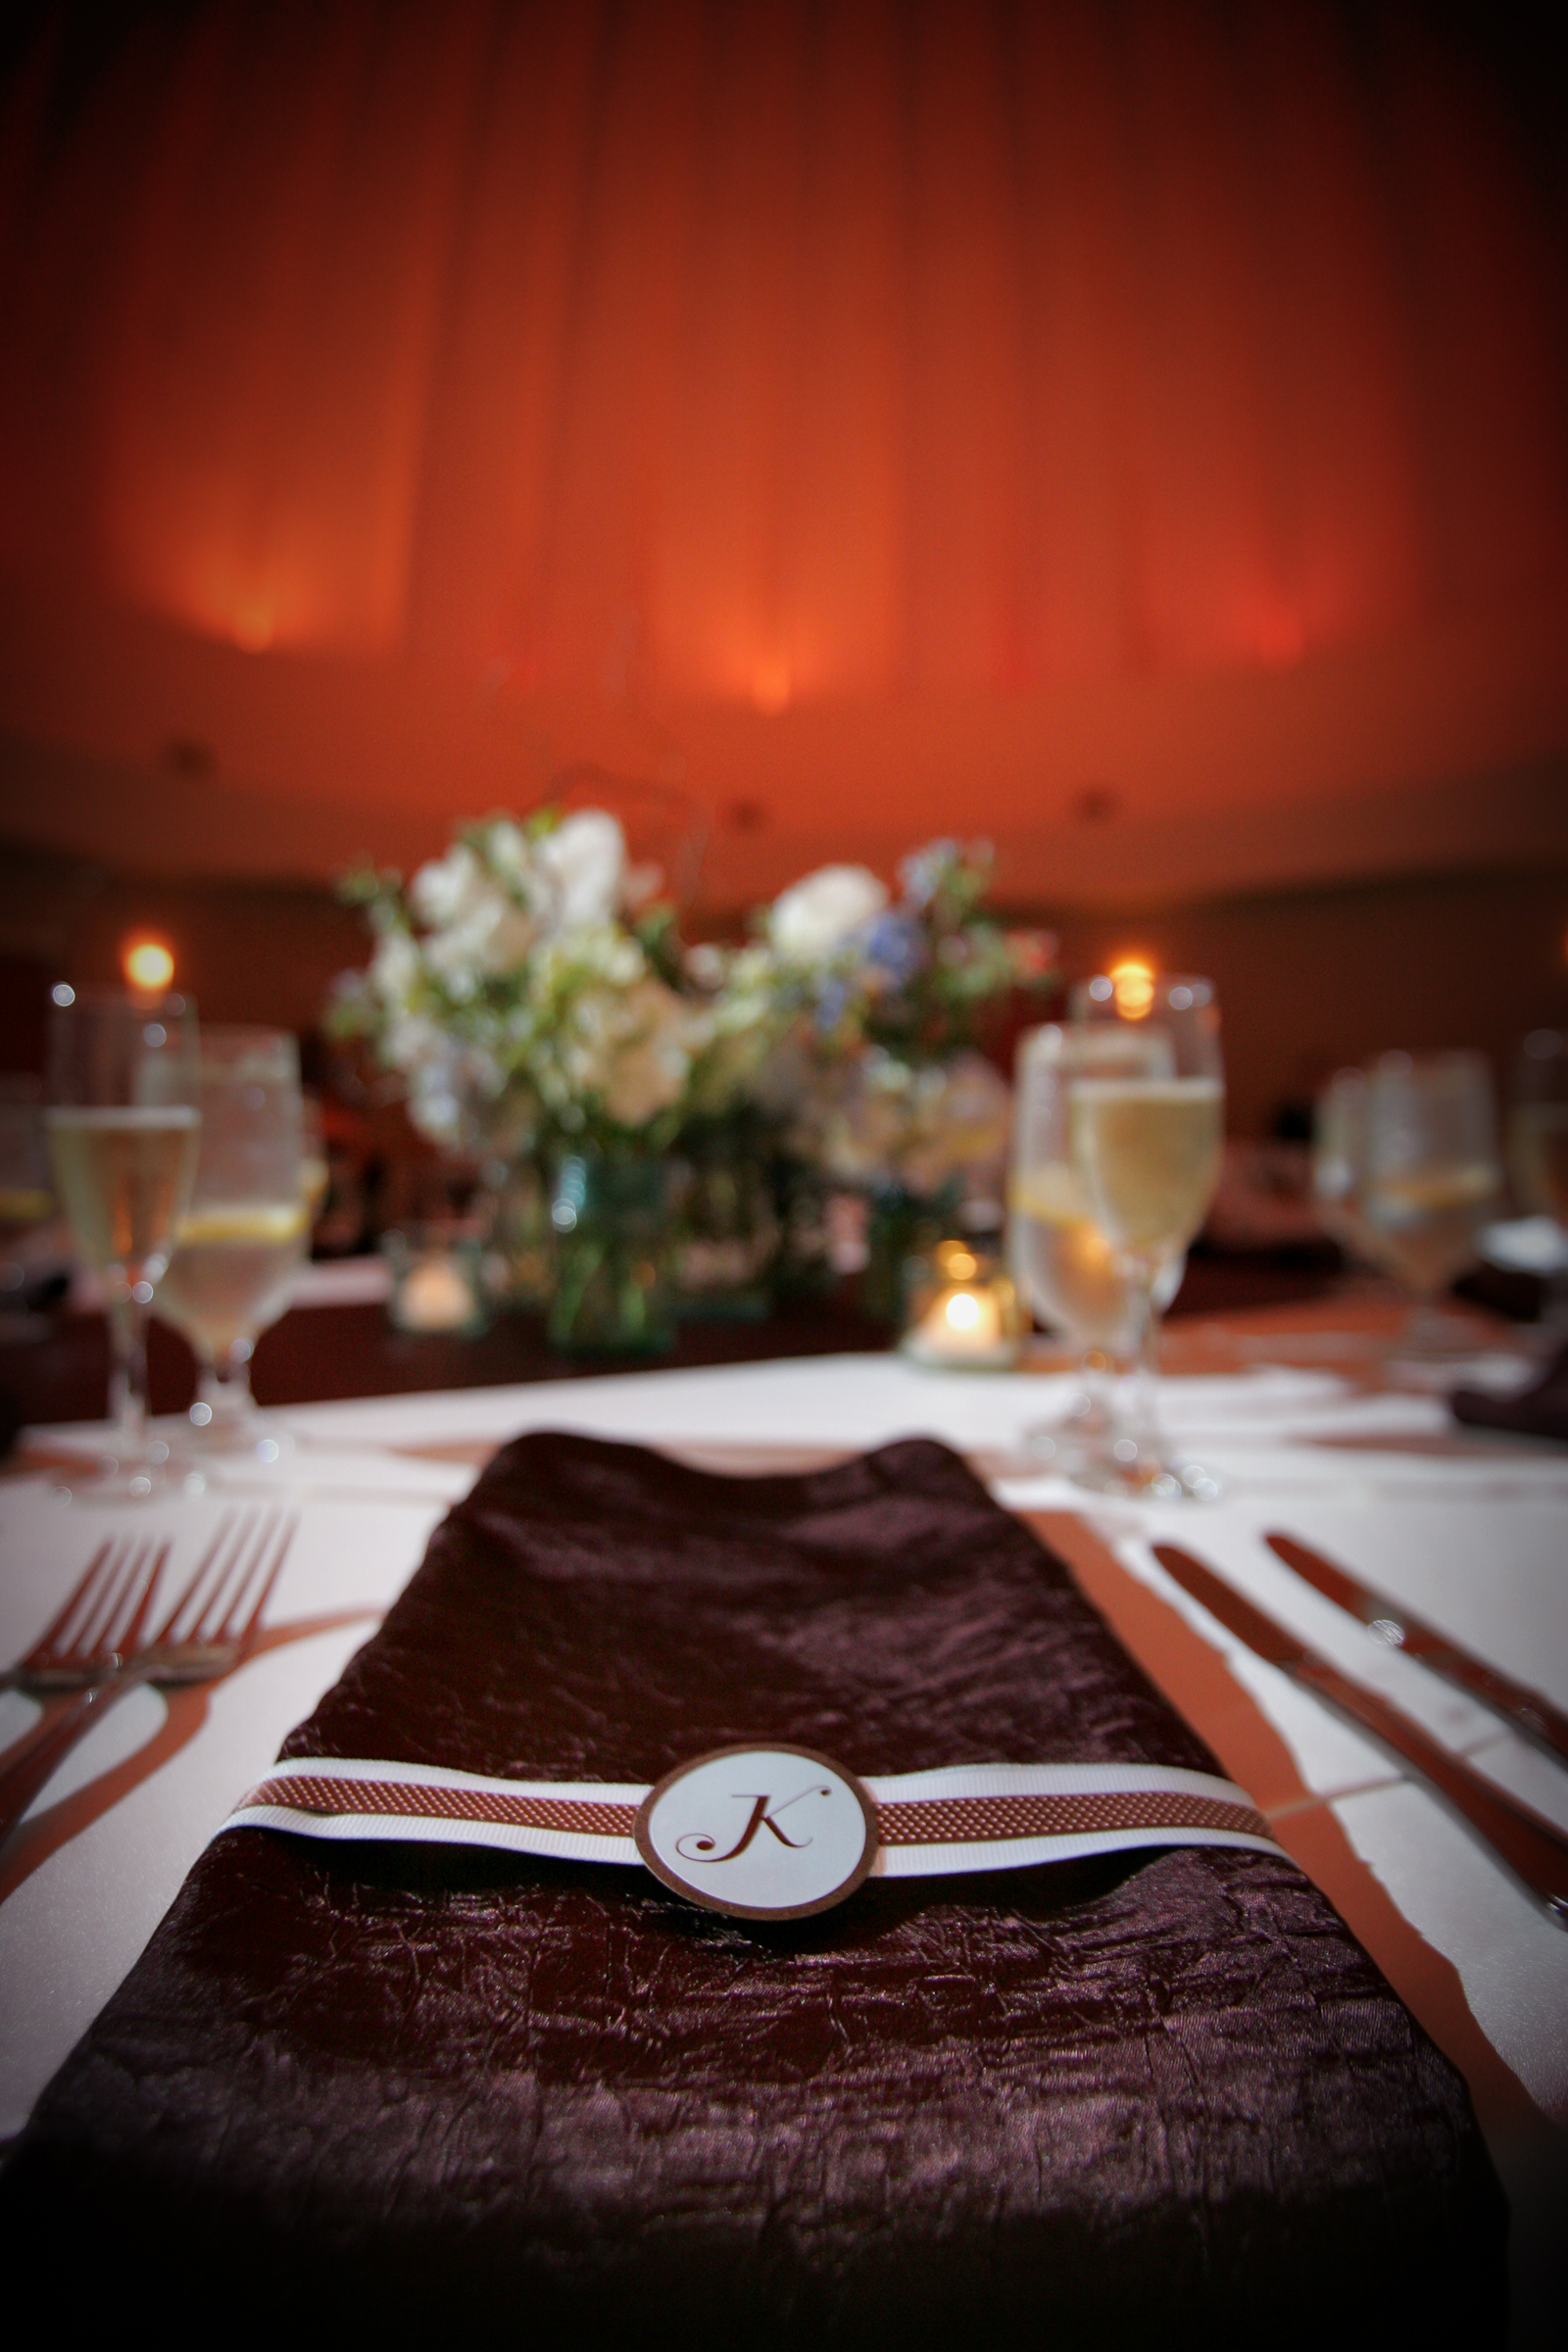 A perfect place setting